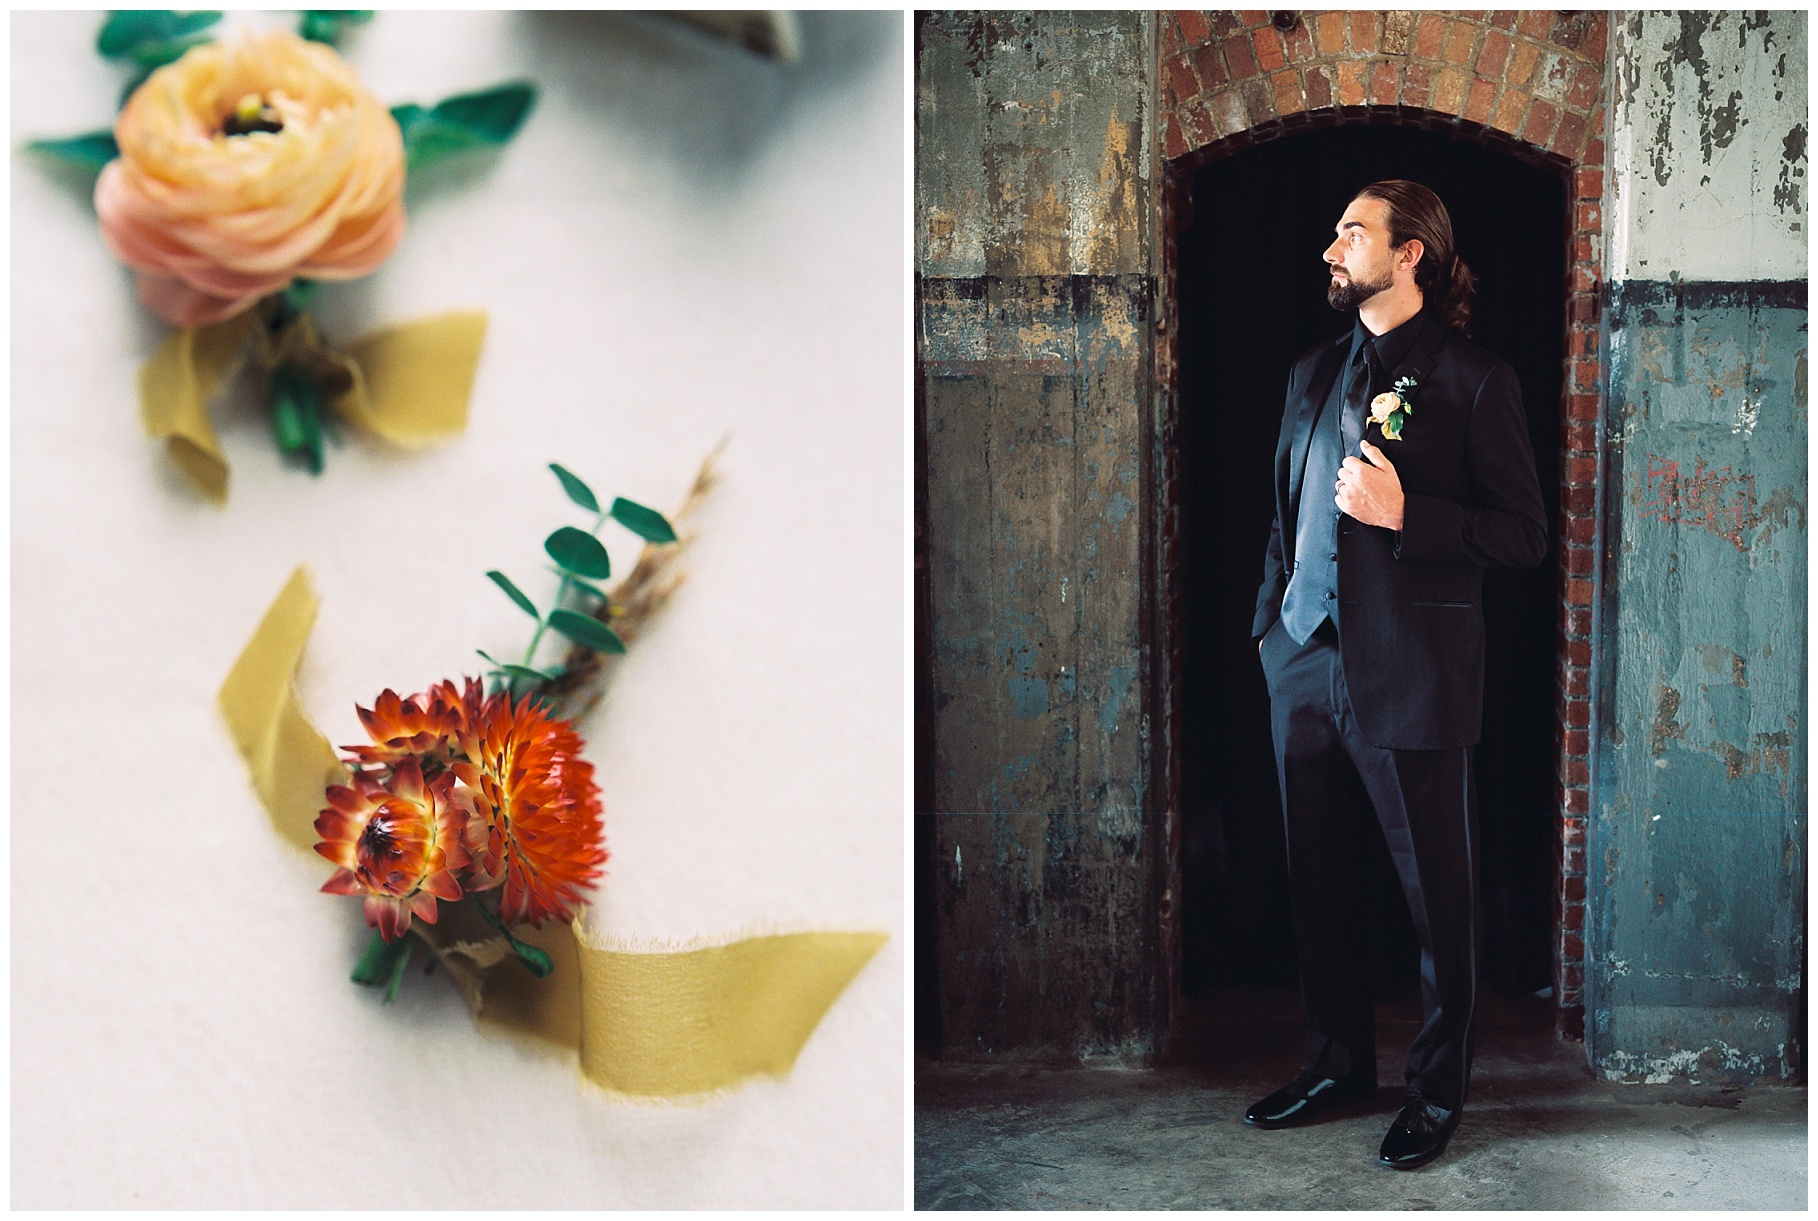 Urban Romance Wedding with Copper Accents at The Millbottom by Kelsi Kliethermes Photography Best Columbia Missouri Wedding Photographer_0016.jpg